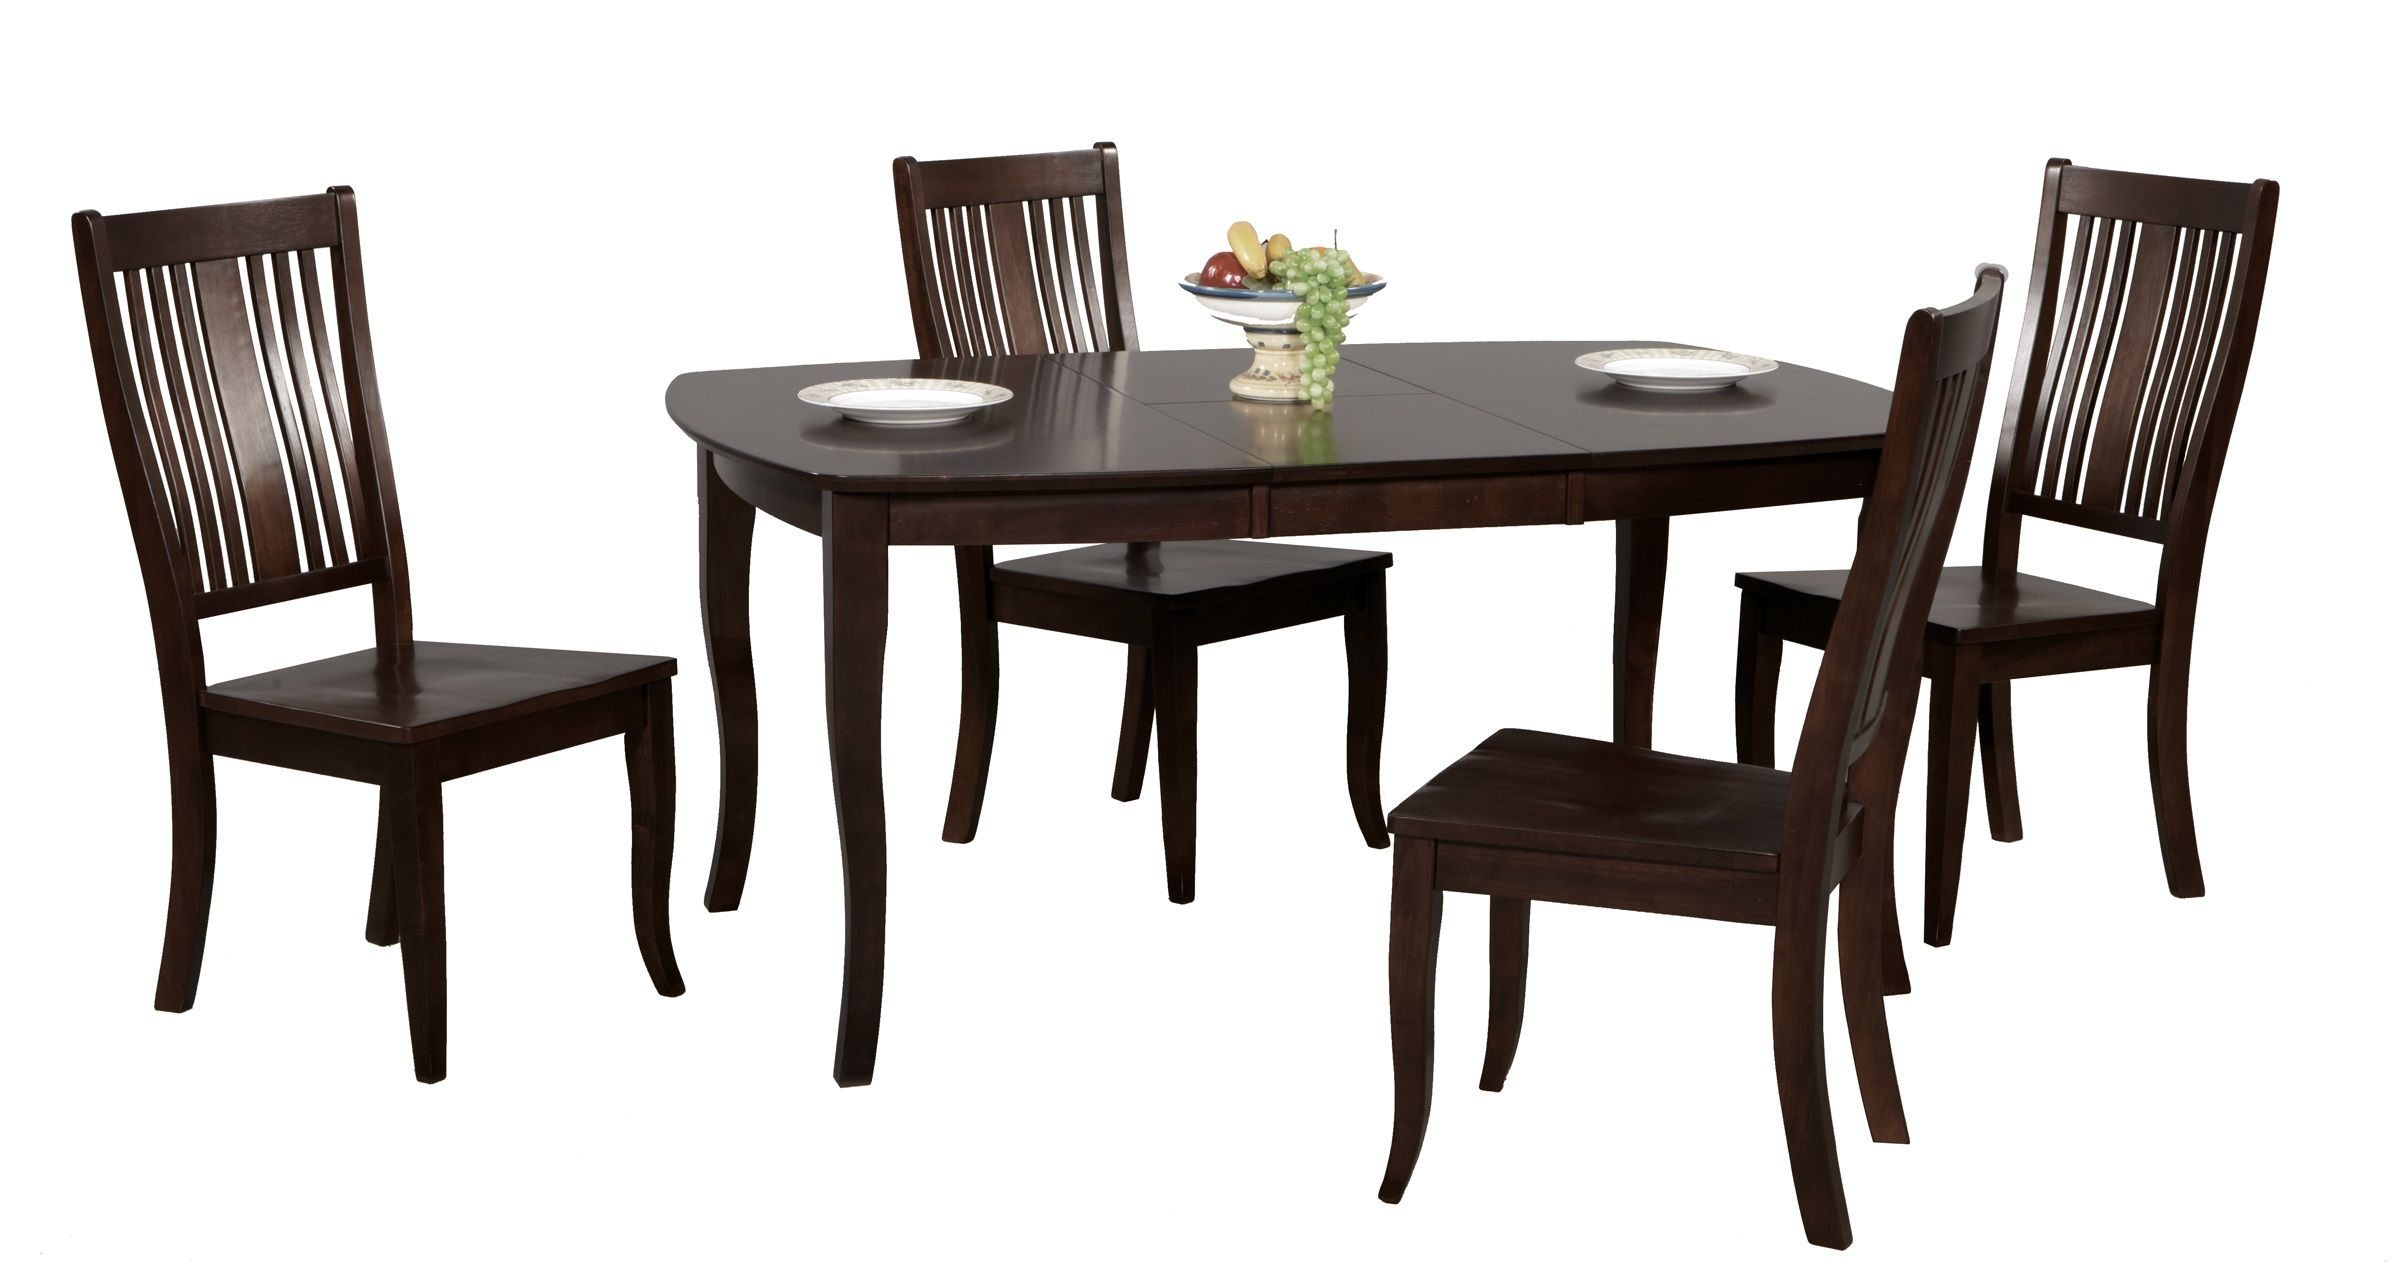 38++ Santa fe dining table and chairs Best Choice